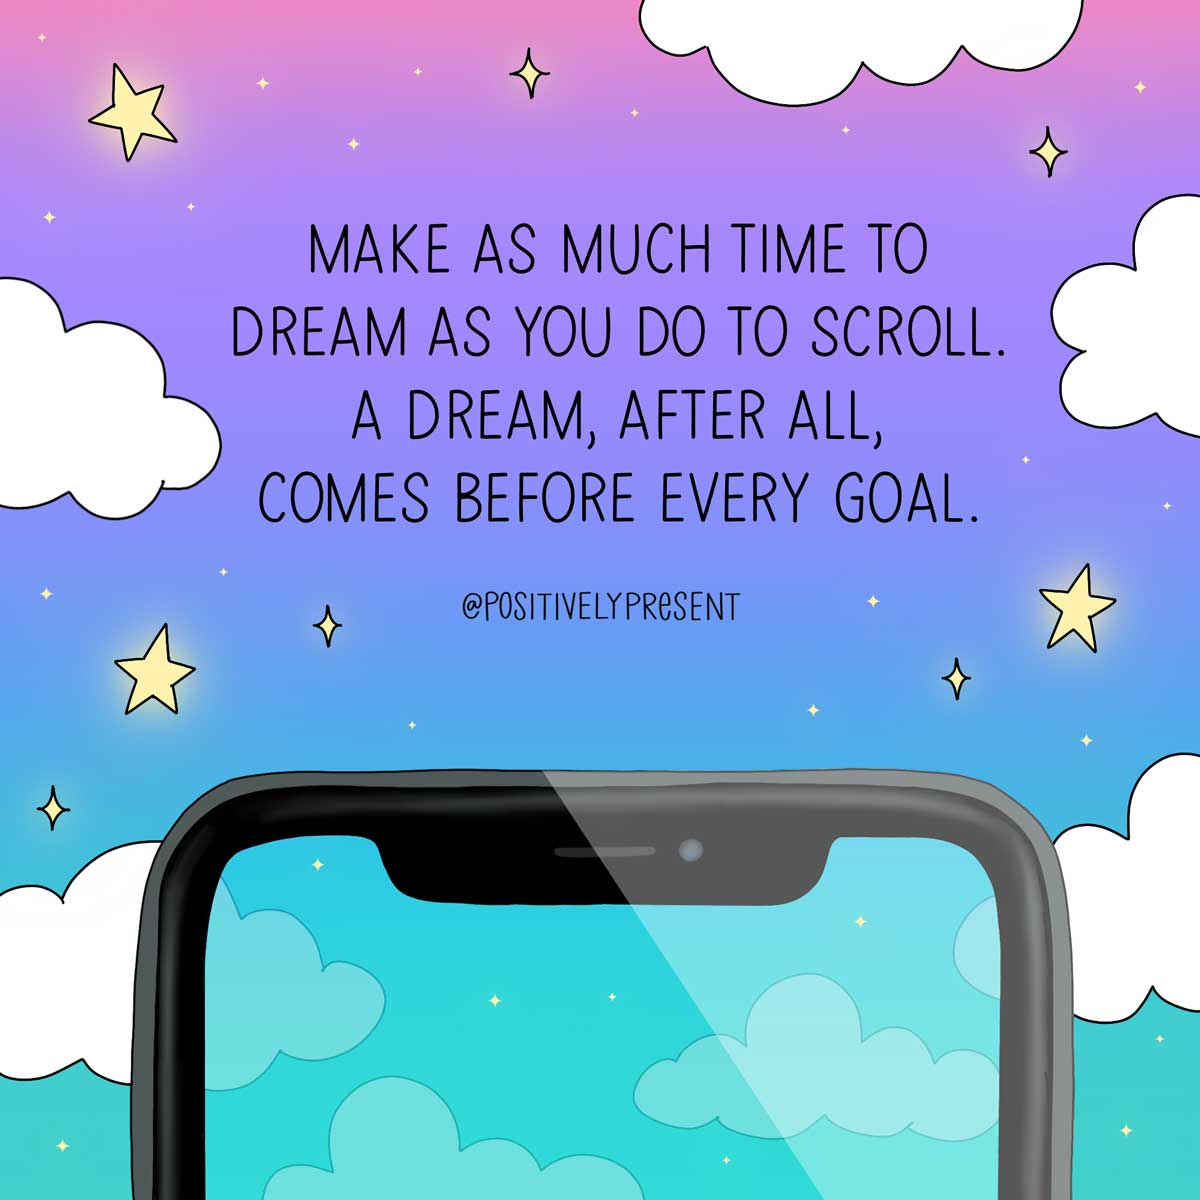 make as much time to dream as to scroll quote on pretty cloud background.